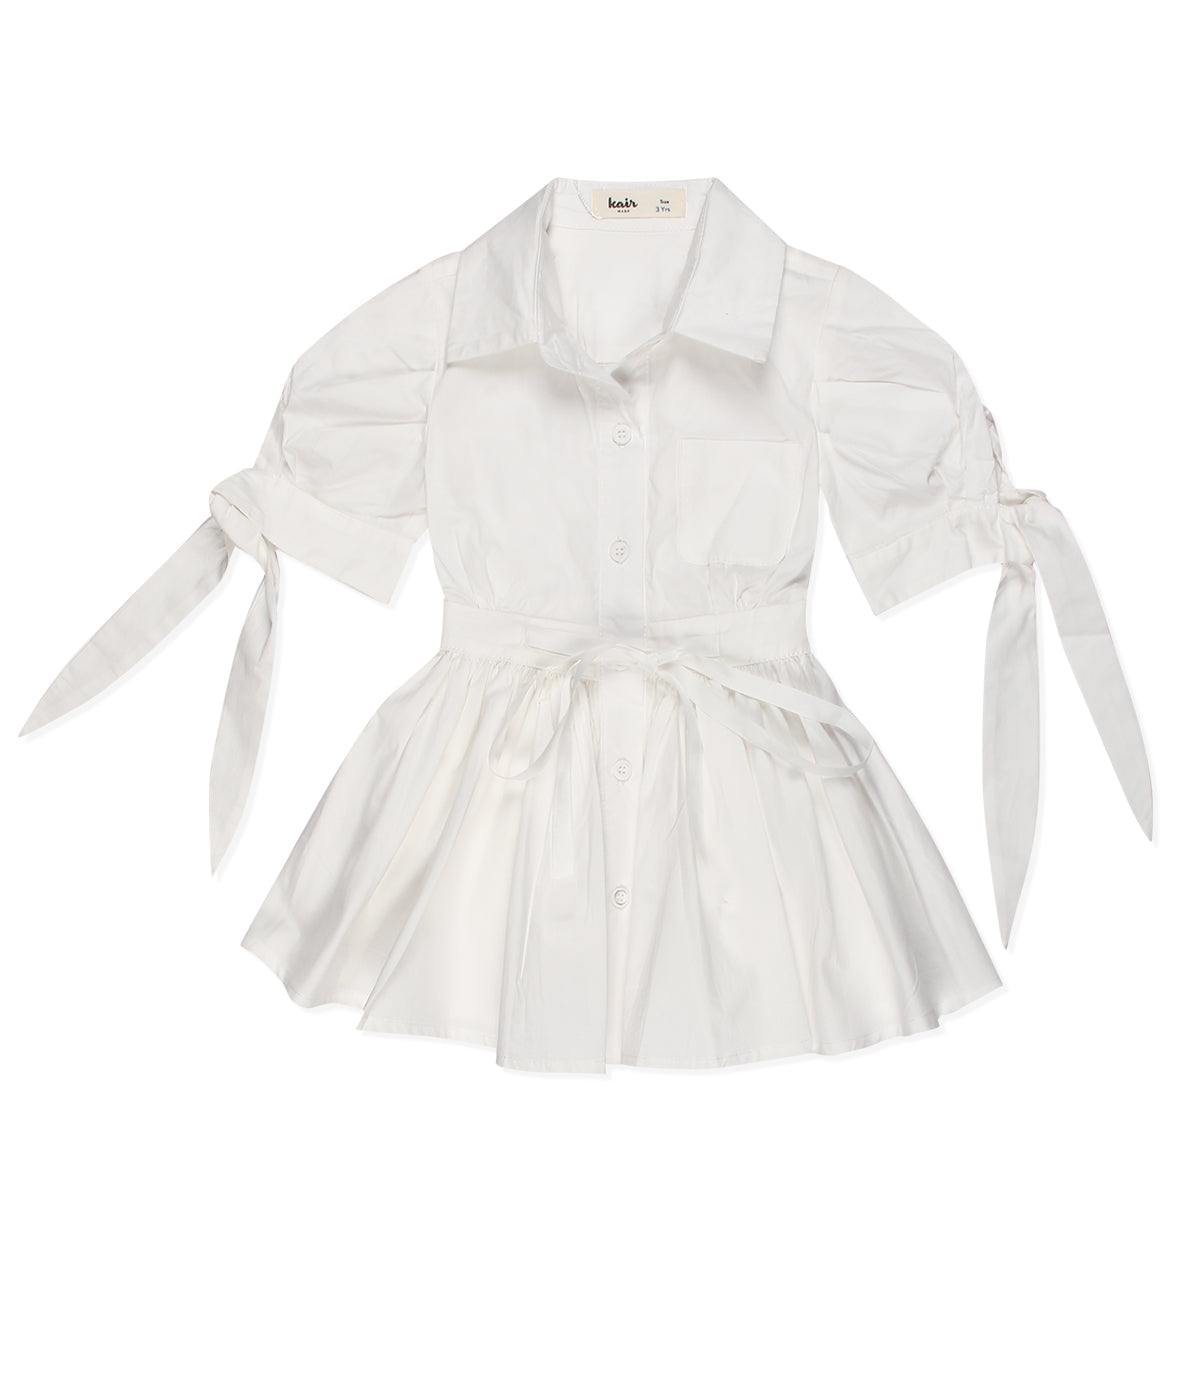 Baby Girls Party shirt dress